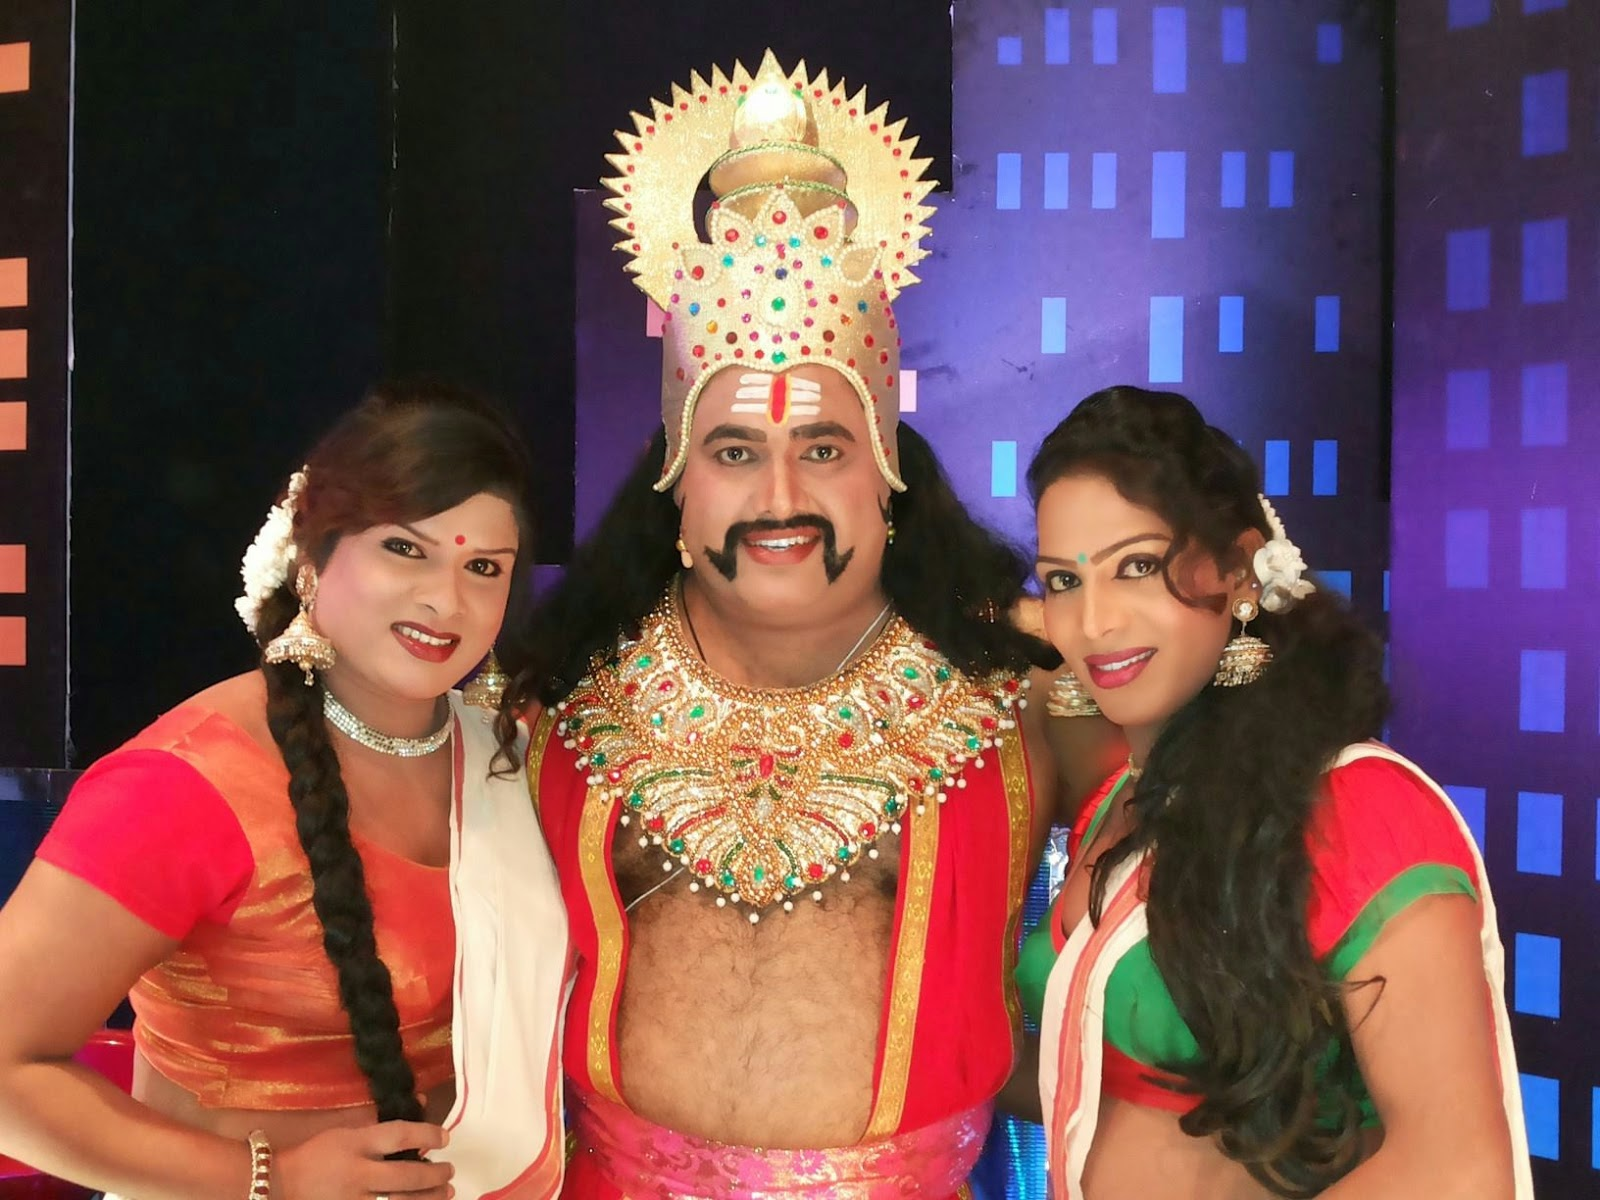 Crossdressing in ramlila